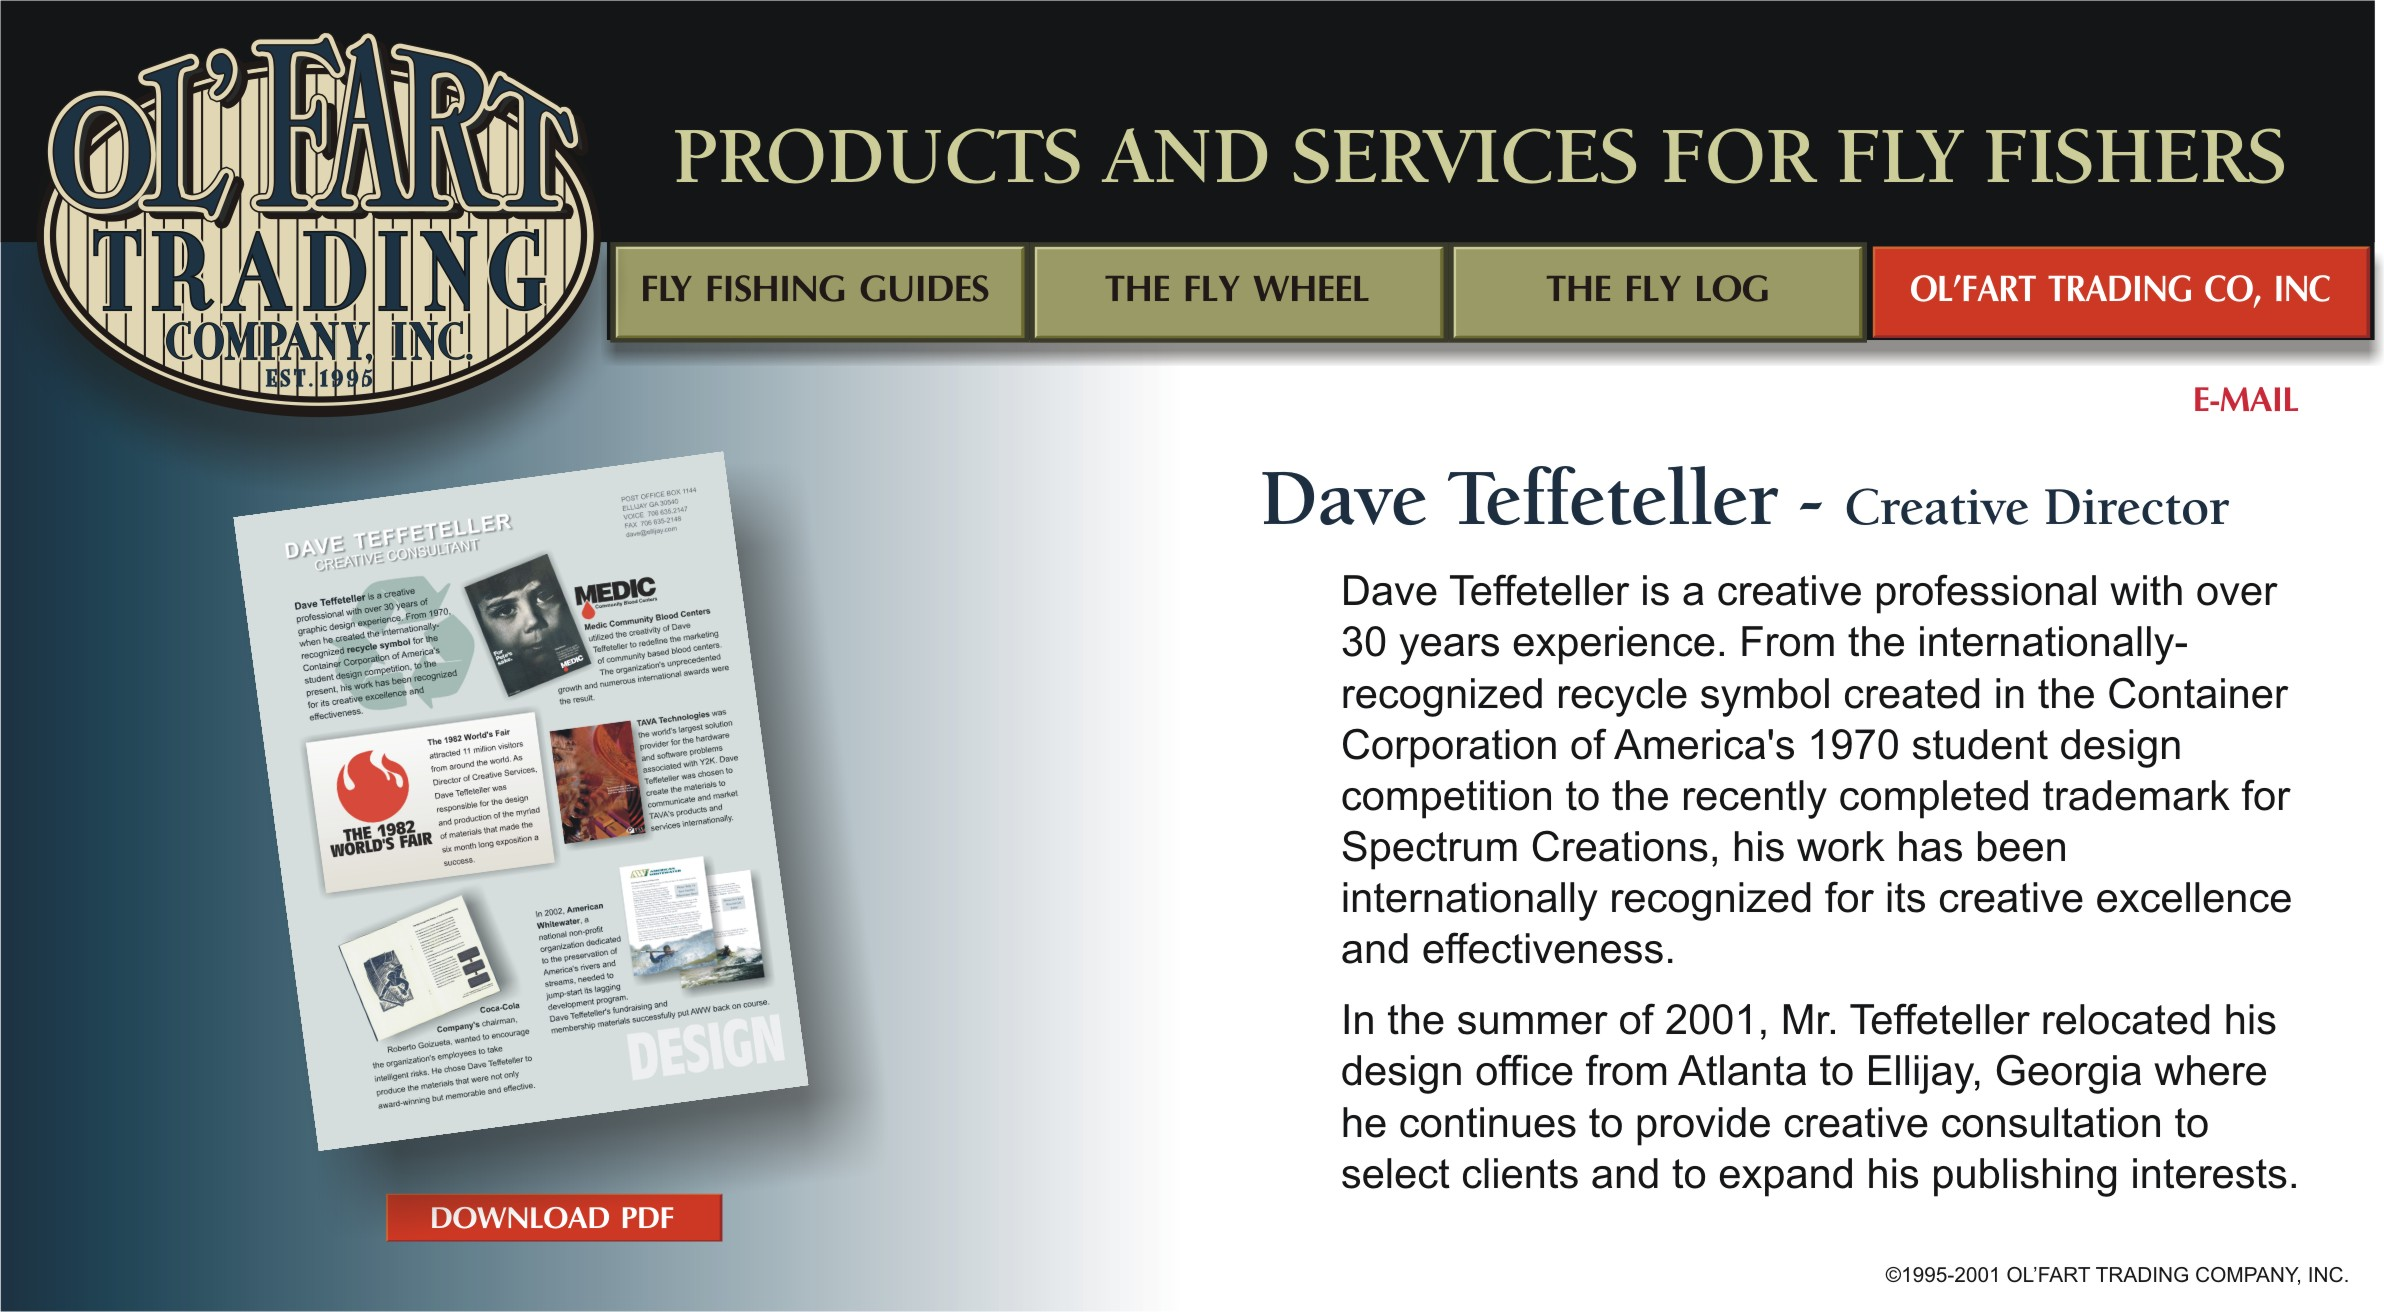 Dave Teffeteller - Creative Director